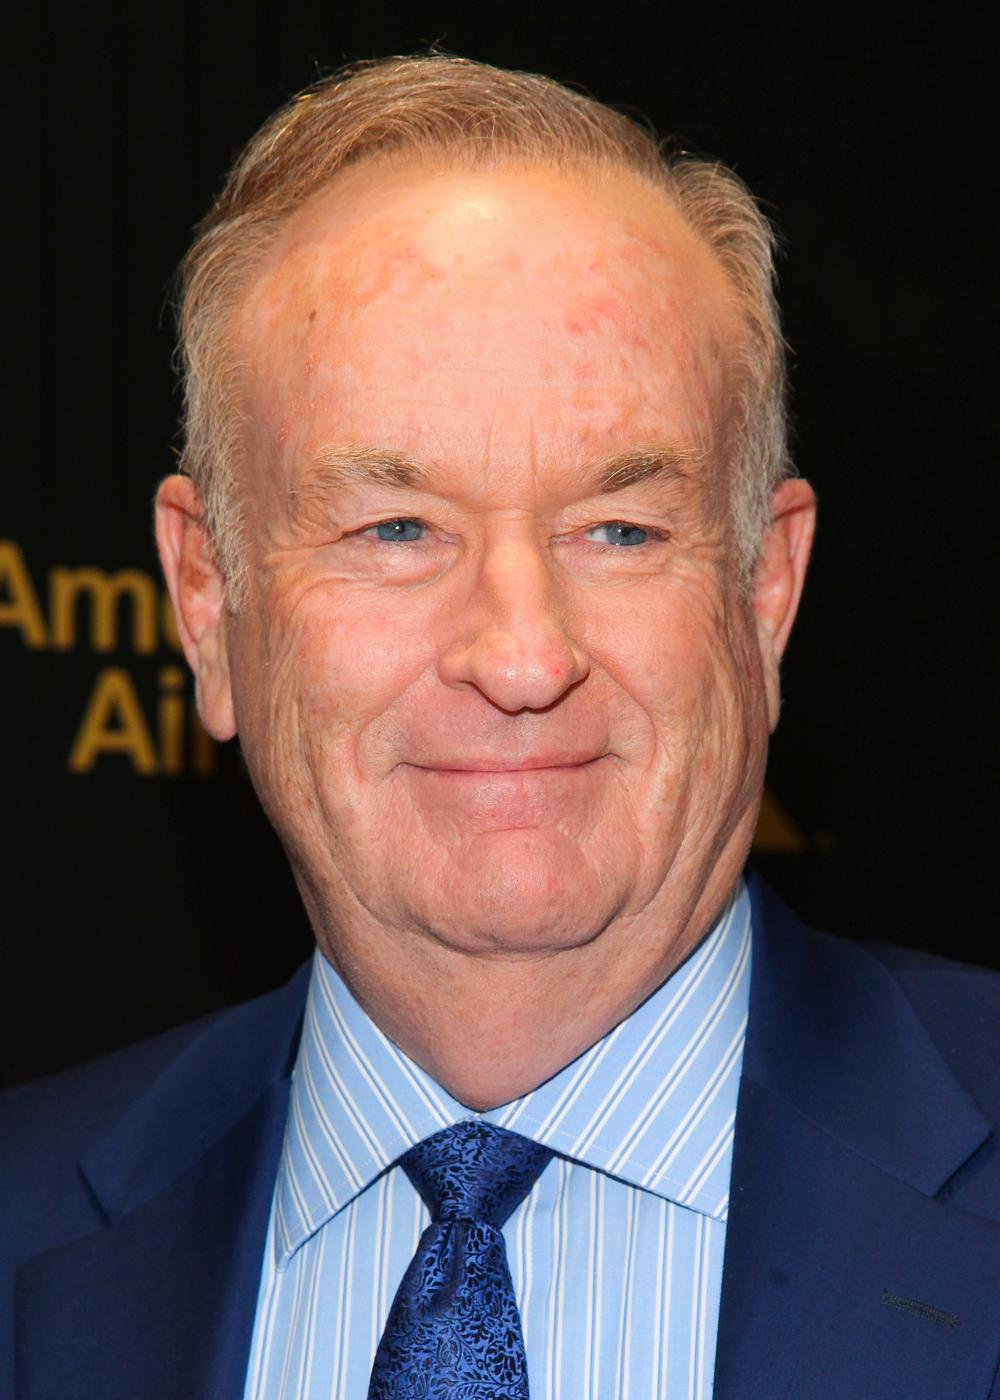 "FILE - In this April 6, 2016 file photo, Bill O'Reilly attends The Hollywood Reporter's ""35 Most Powerful People in Media"" celebration in New York. 21st Century Fox issued a statement Wednesday, April 19, 2017, that O'Reilly will not return to Fox News. (Photo by Andy Kropa/Invision/AP, File)"